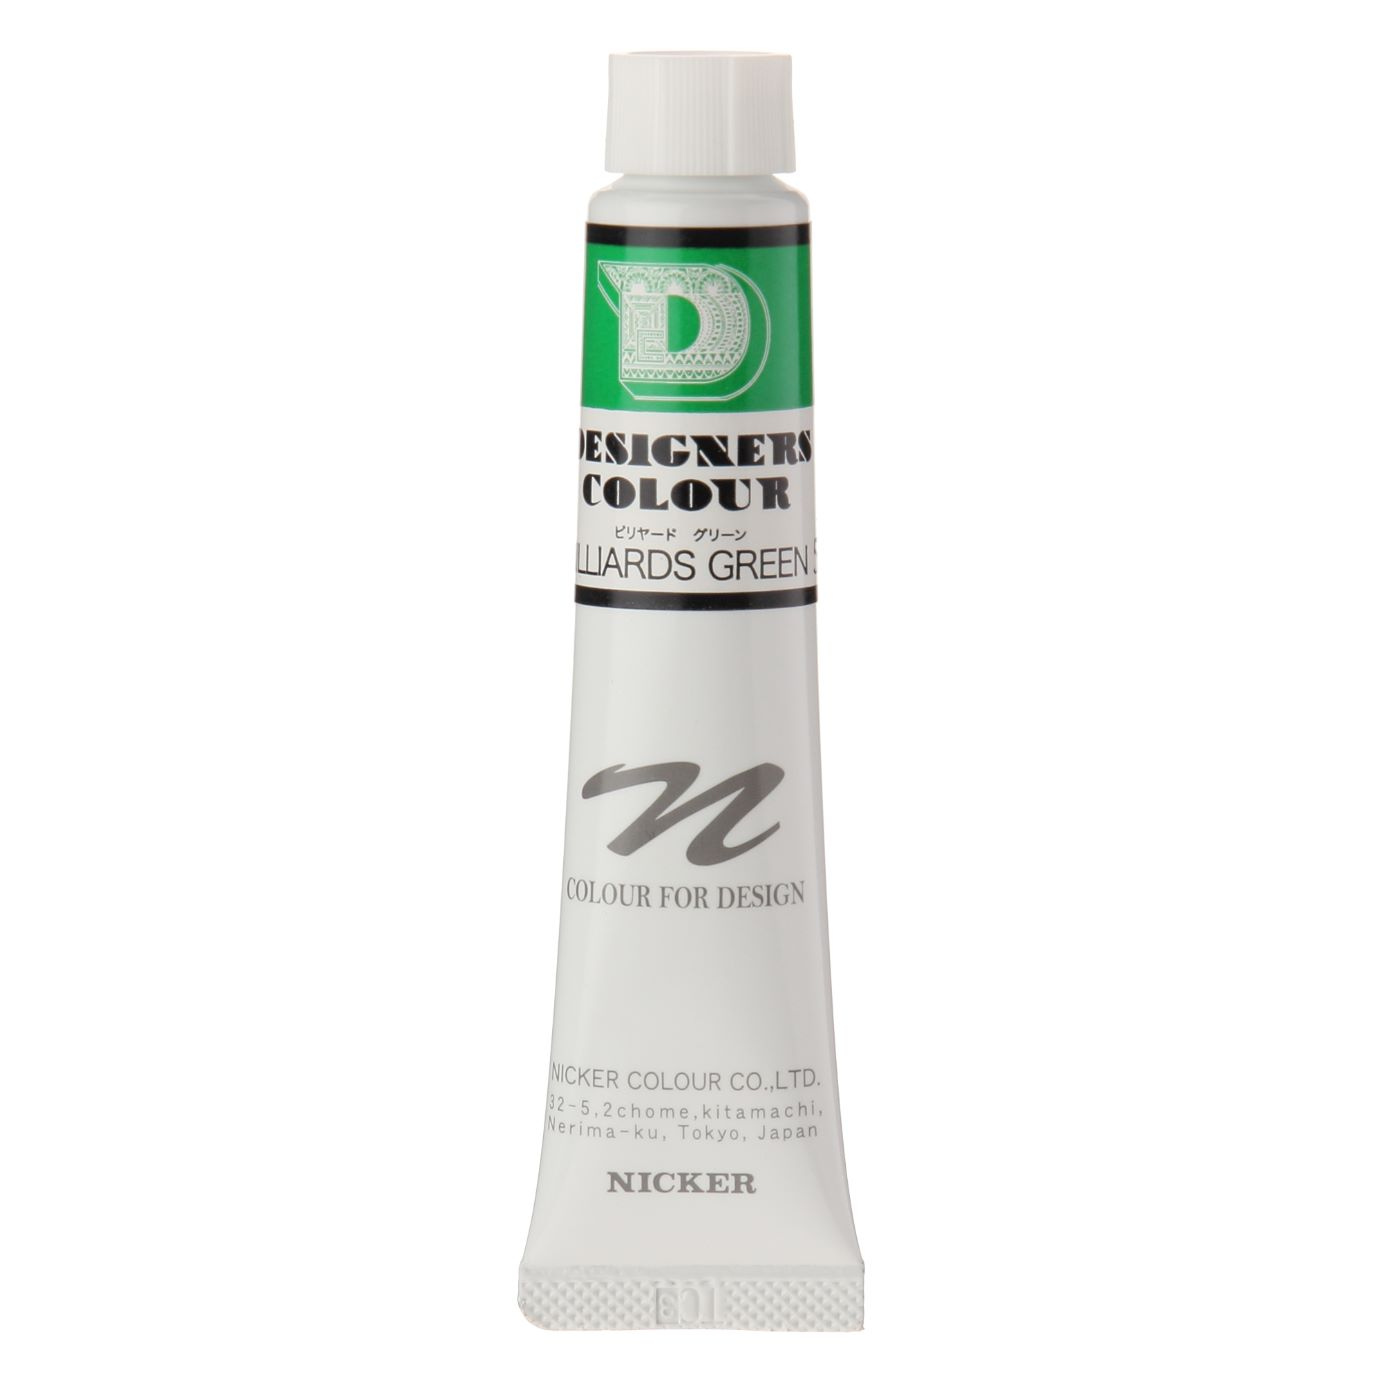 DESIGNERS COLOUR 20ml 549 BILLIARDS GREEN